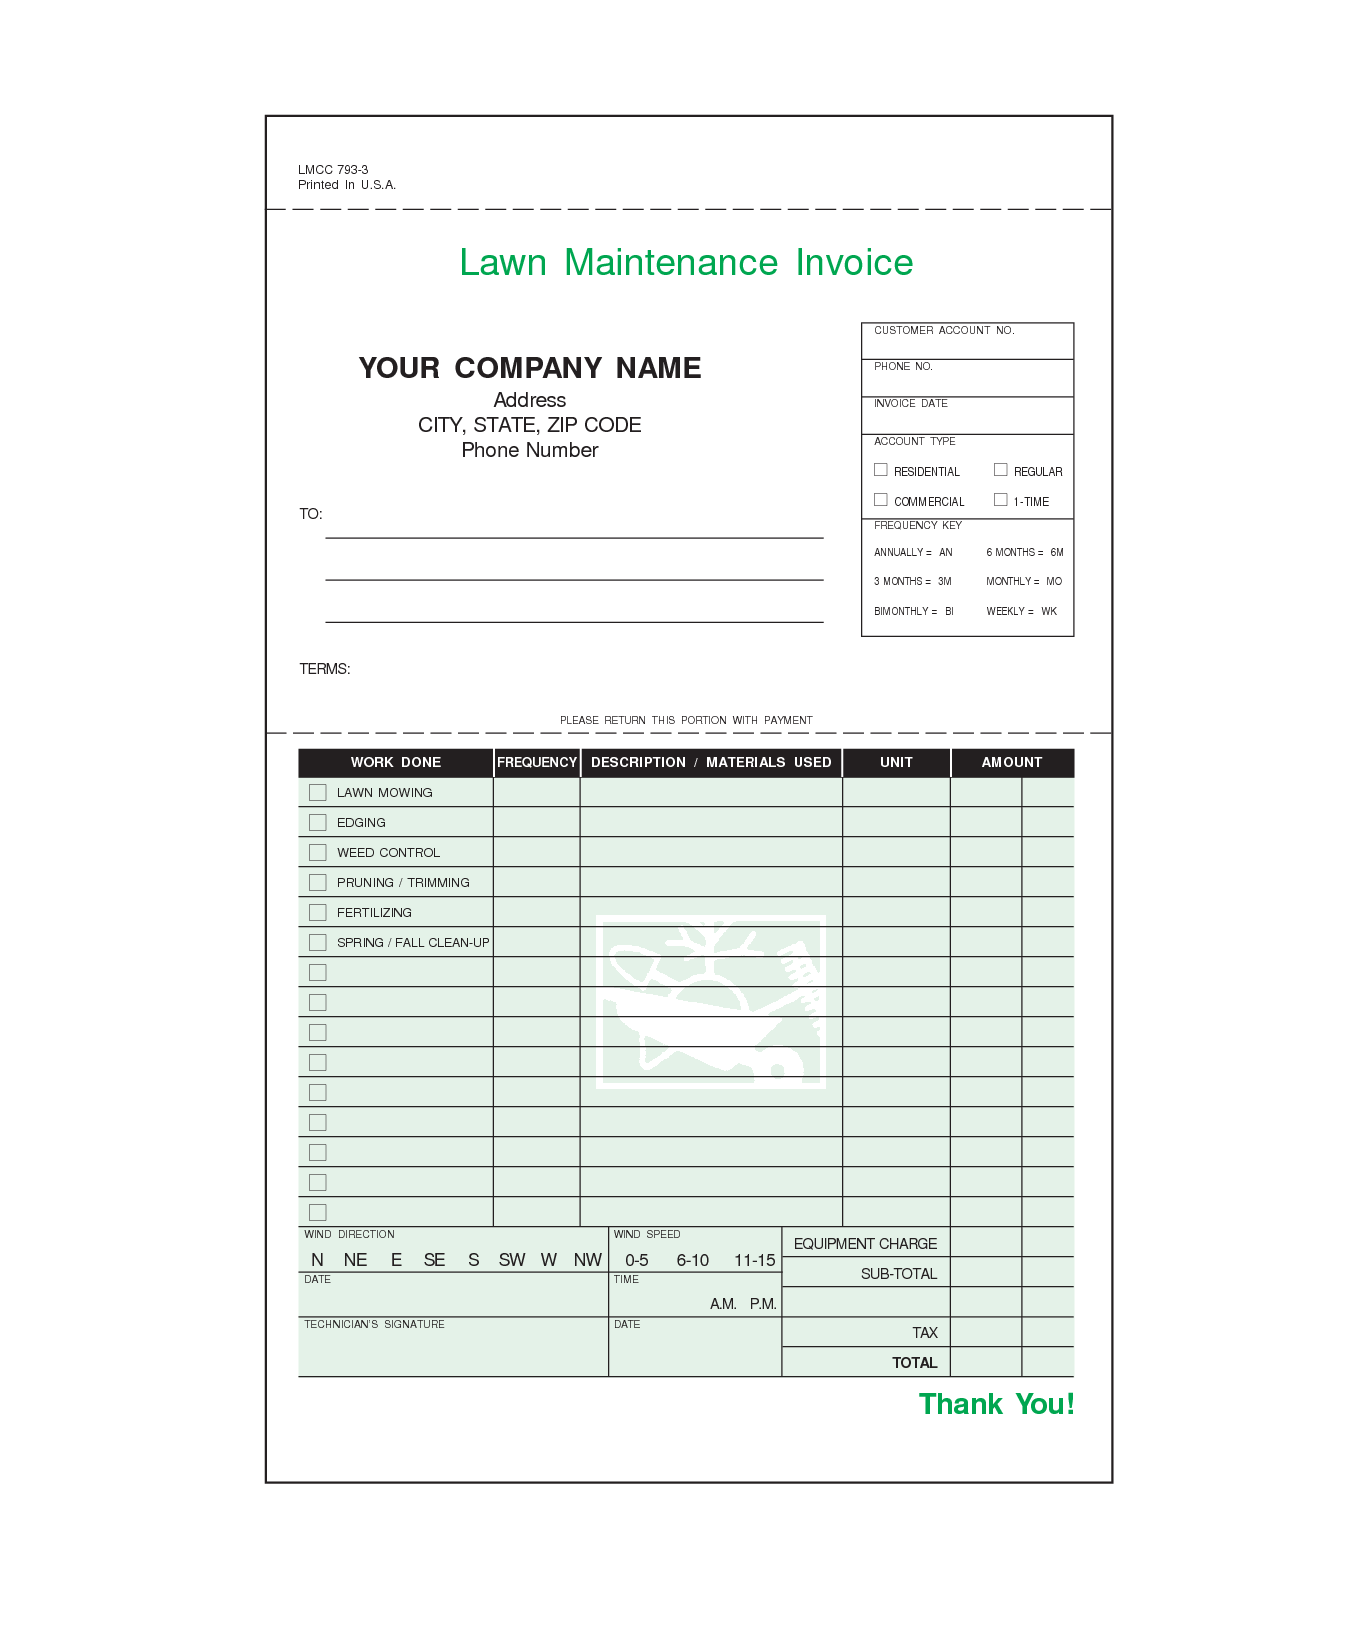 lawn care invoice design templates GopherHaul Landscaping & Lawn